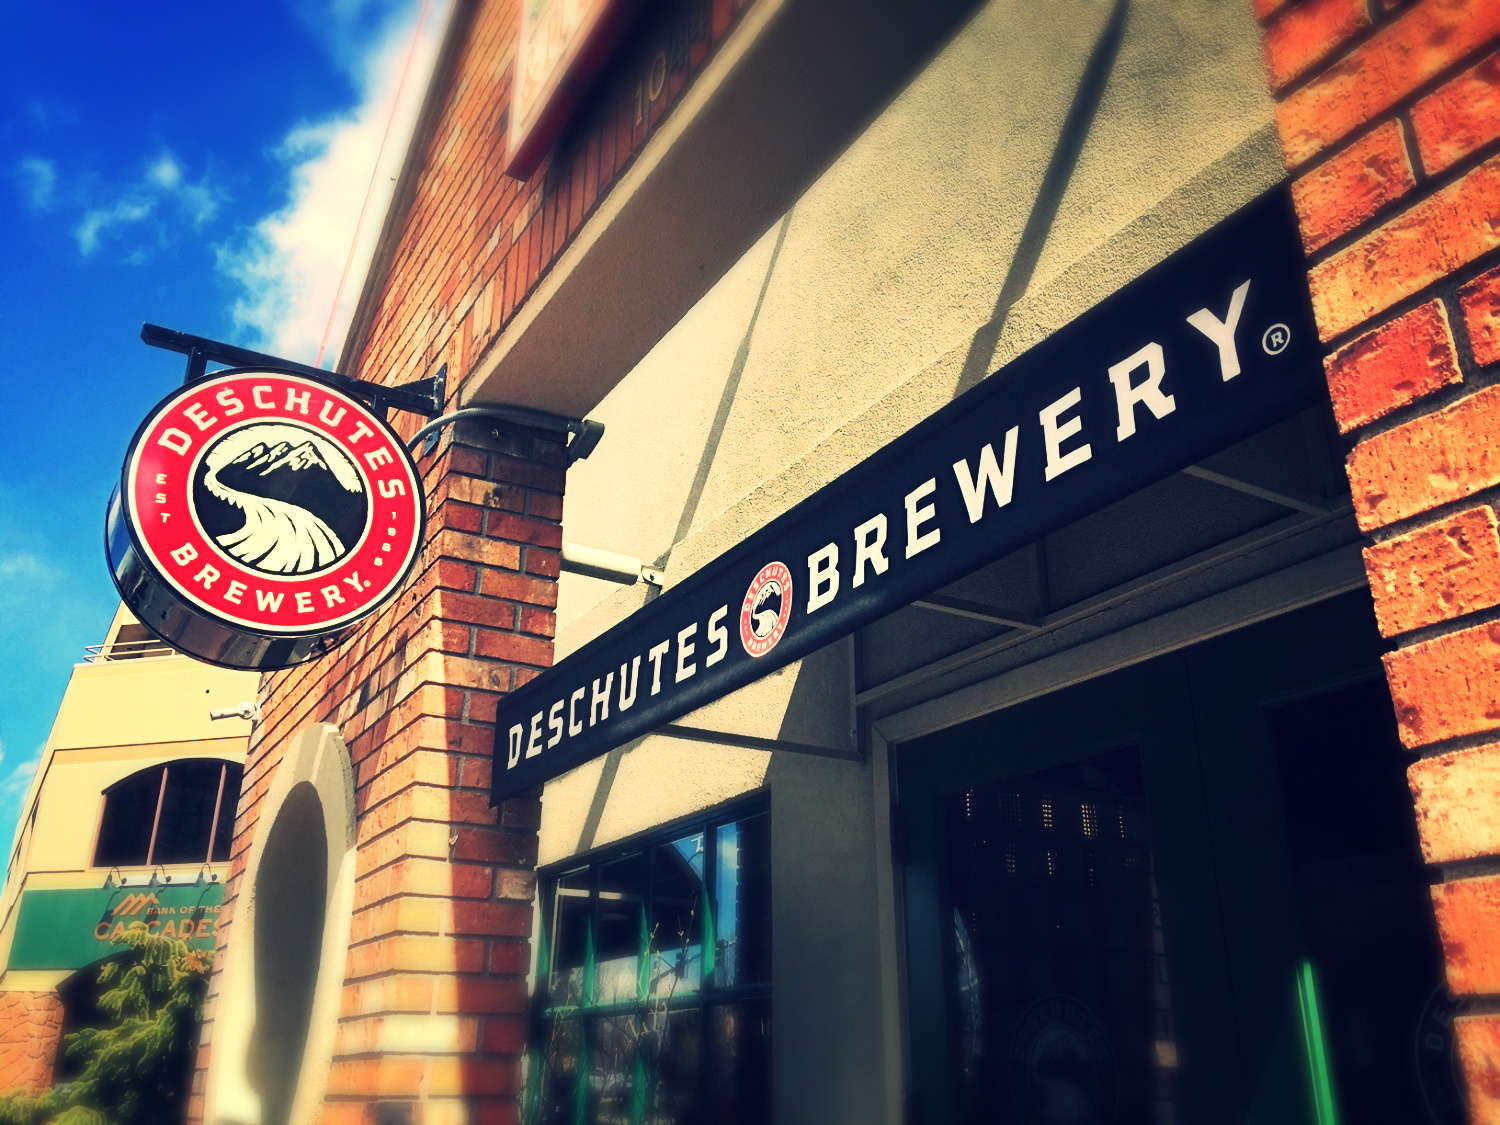 Deschutes Brewery with Graphics